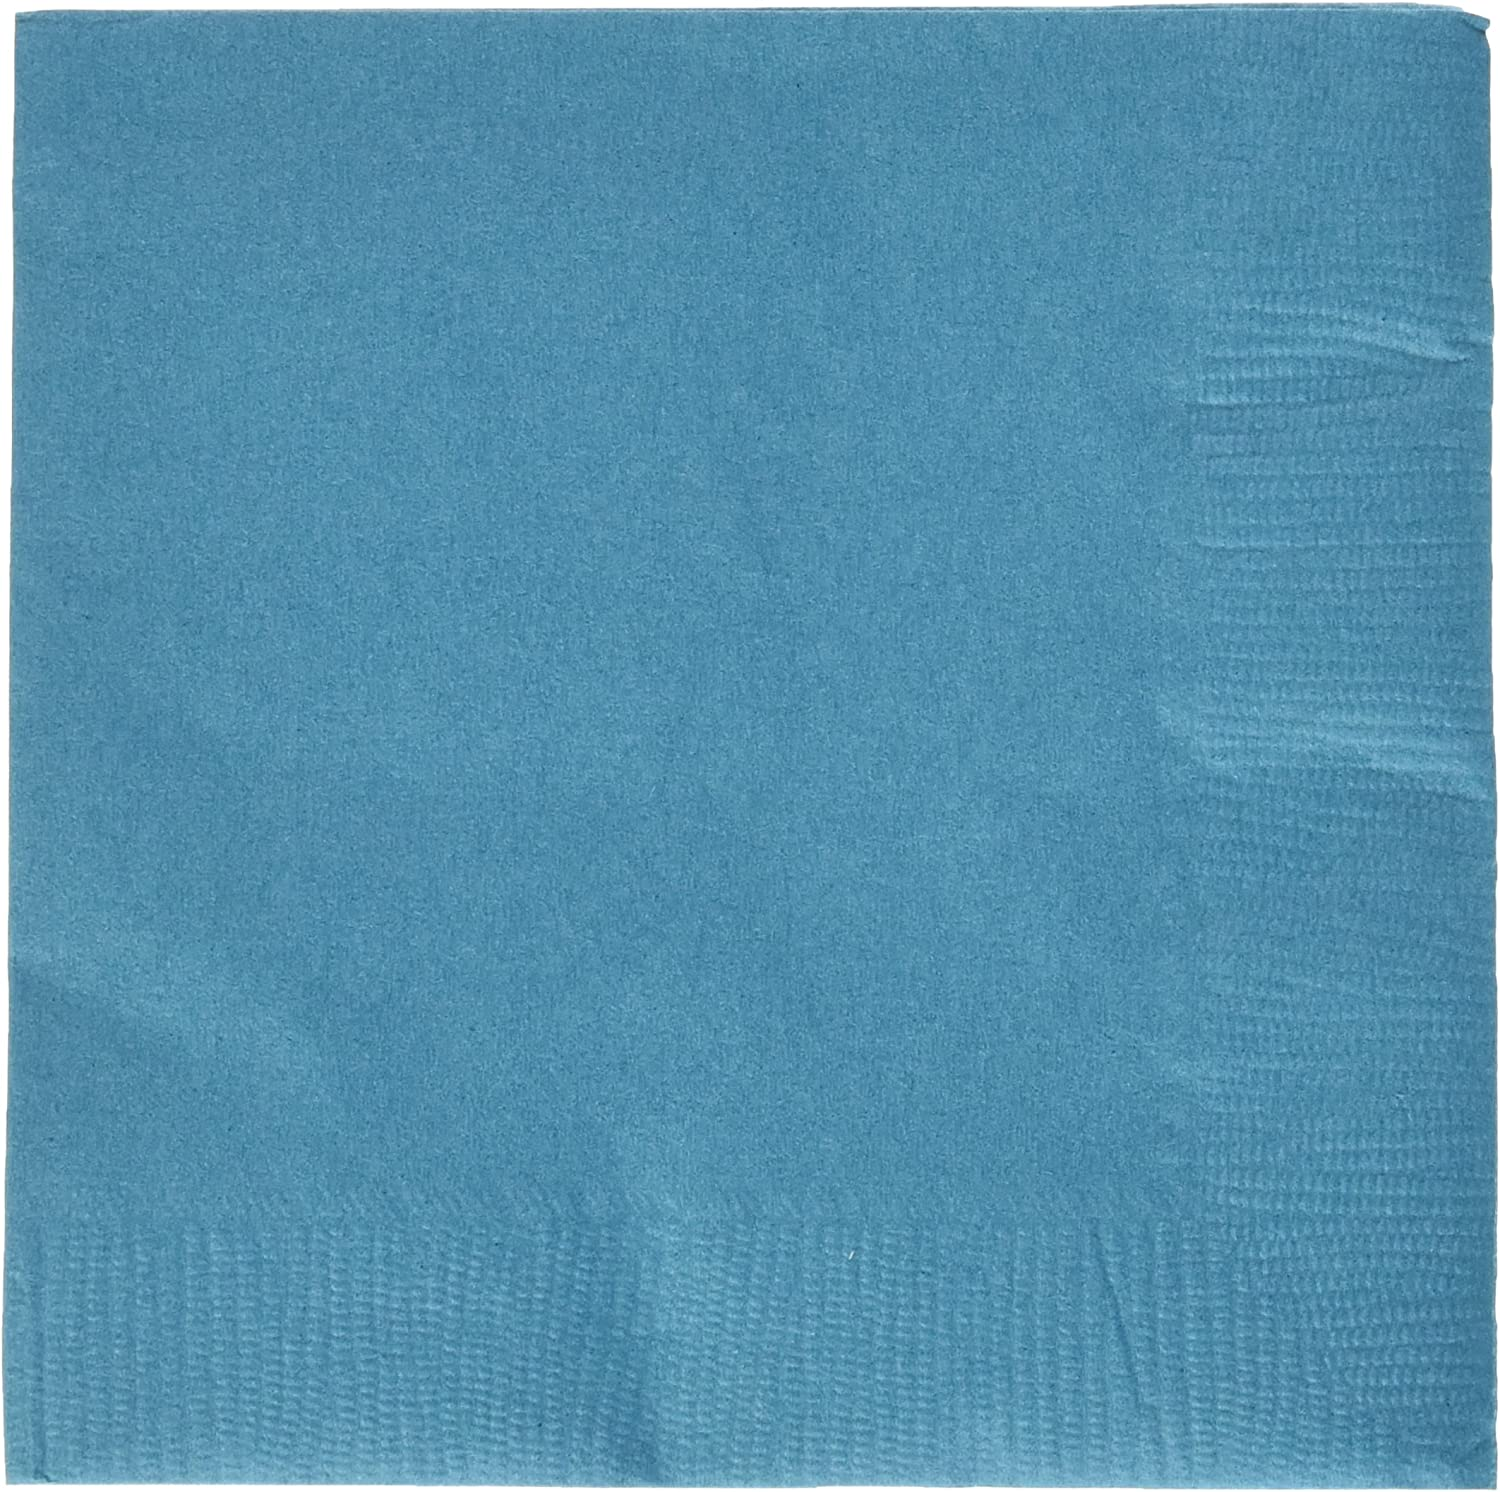 Eco Party Peacock Blue Beverage Napkins | 3-Ply | 50 pcs. |Party Supply